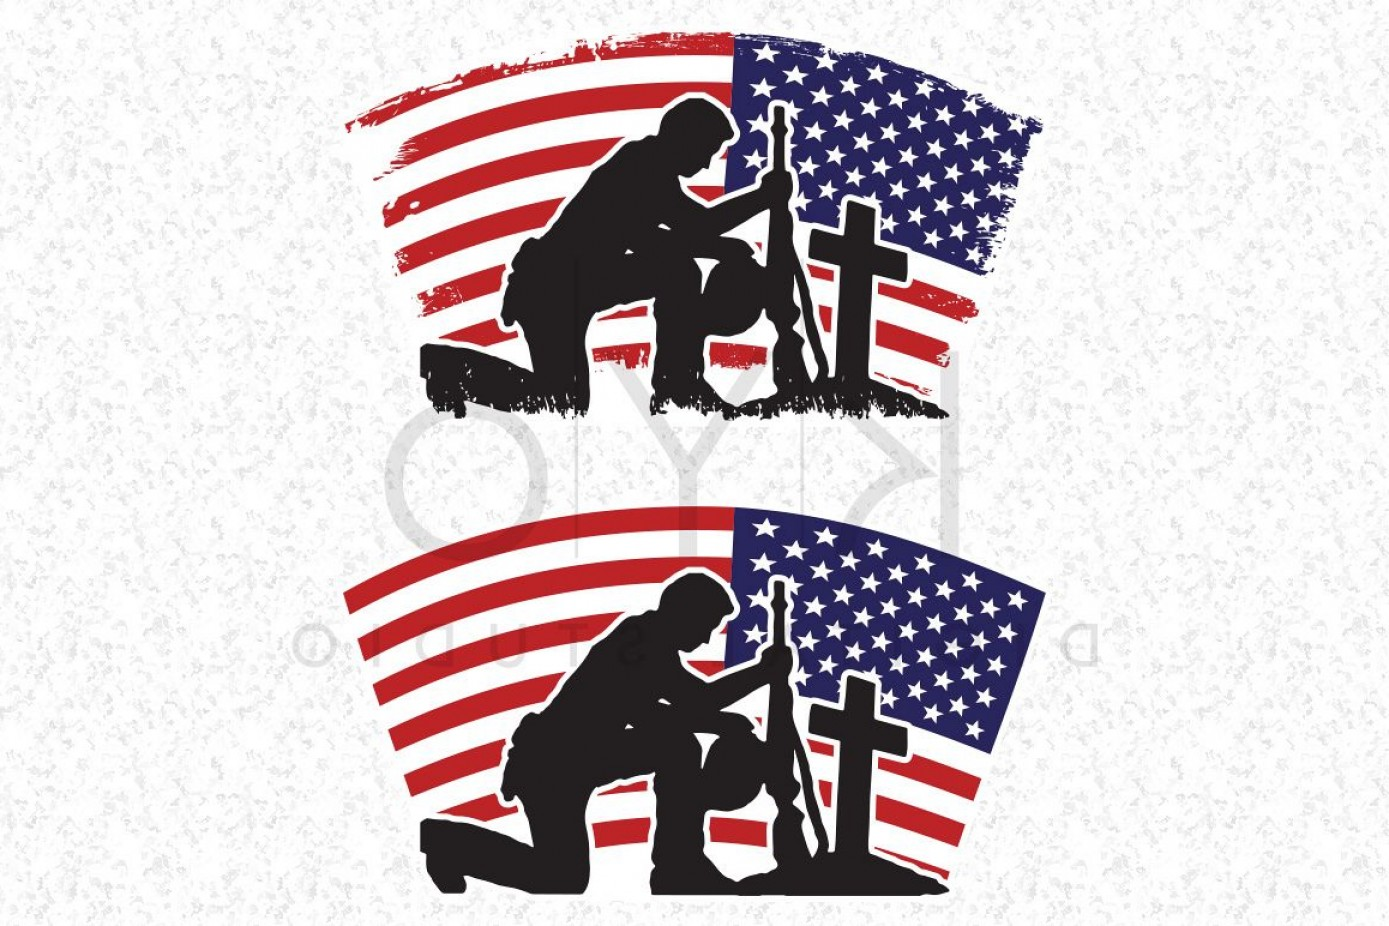 Distressed Flag Vector Digital: Fallen Soldier Svg Veterans Day Svg Dxf Png Eps Files American Flag Vector Us Flag Vector Image Military Flag Distressed Flag